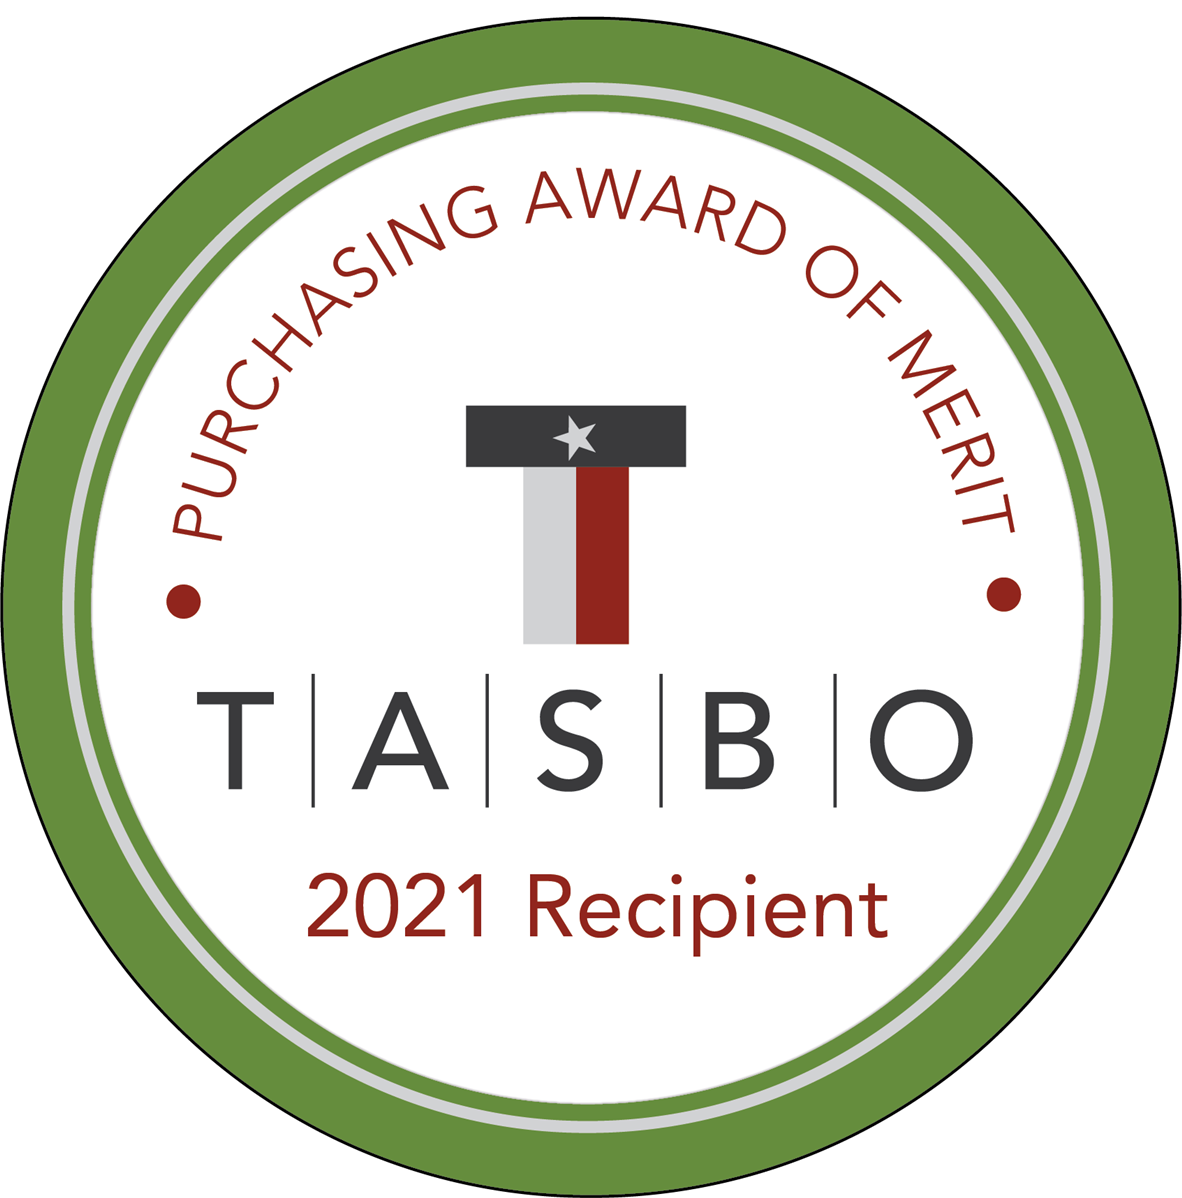 Tasbo Website